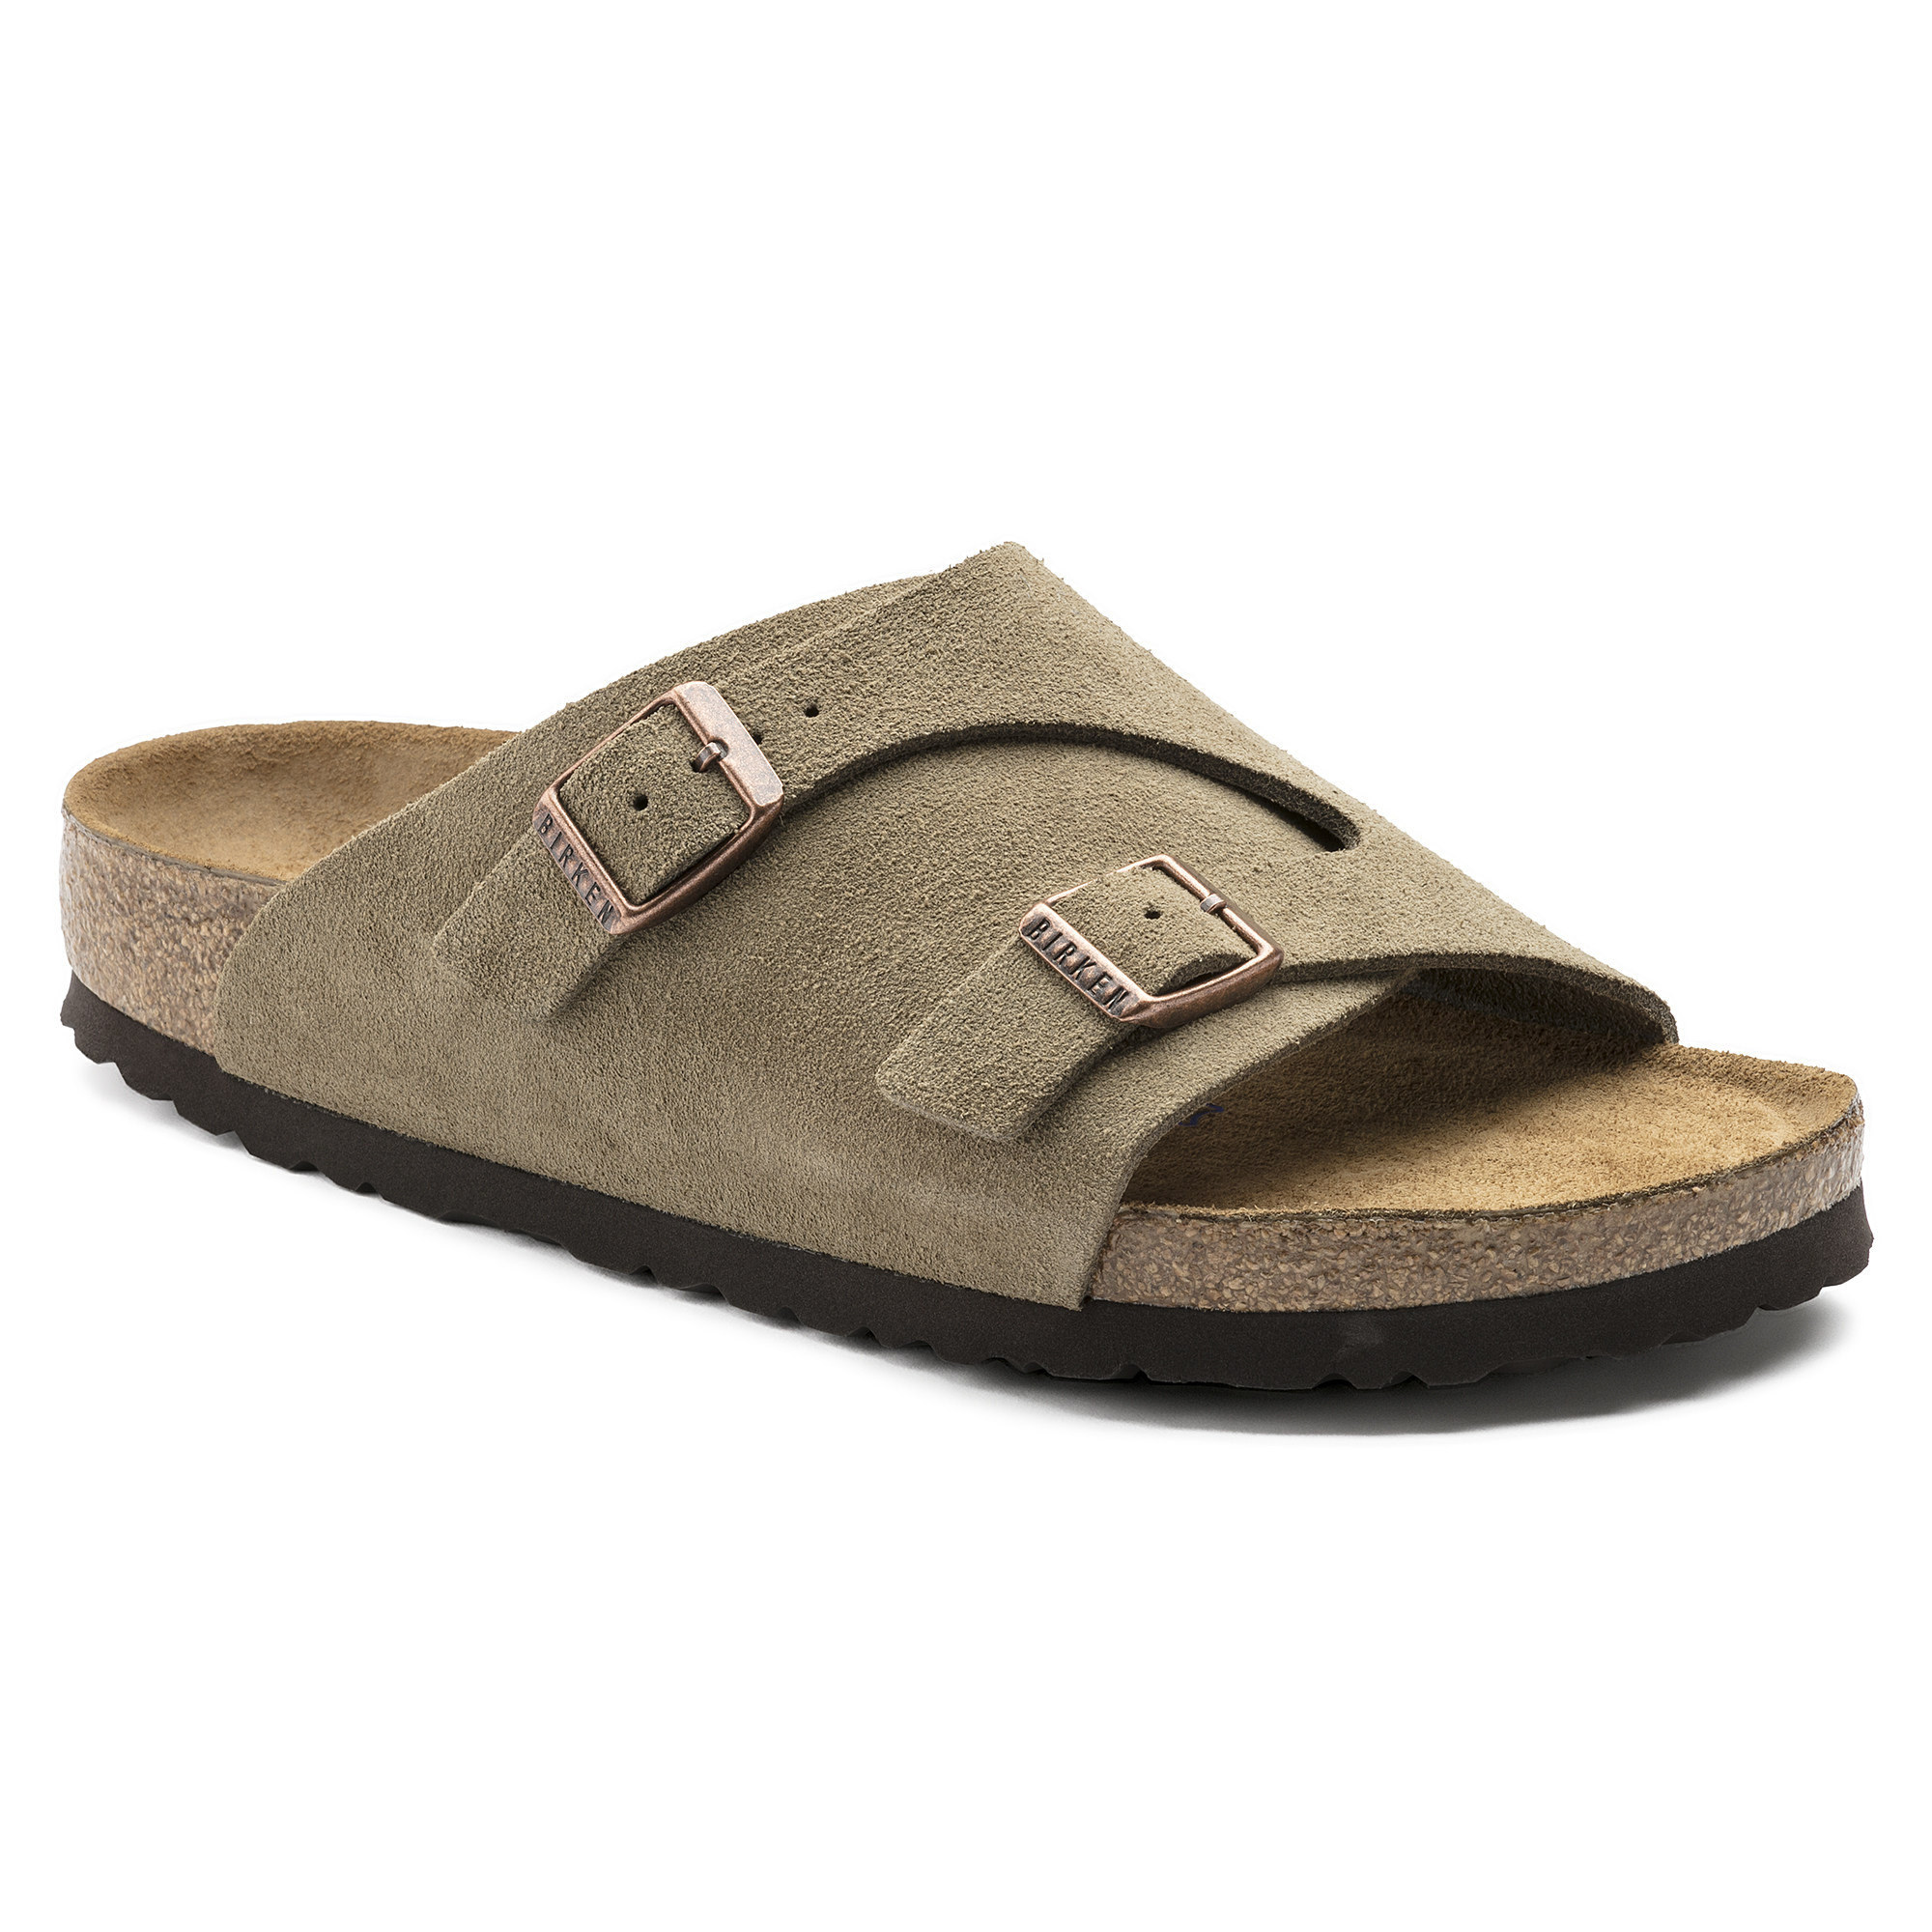 f0959759524 Zürich Suede Leather Soft Footbed Taupe